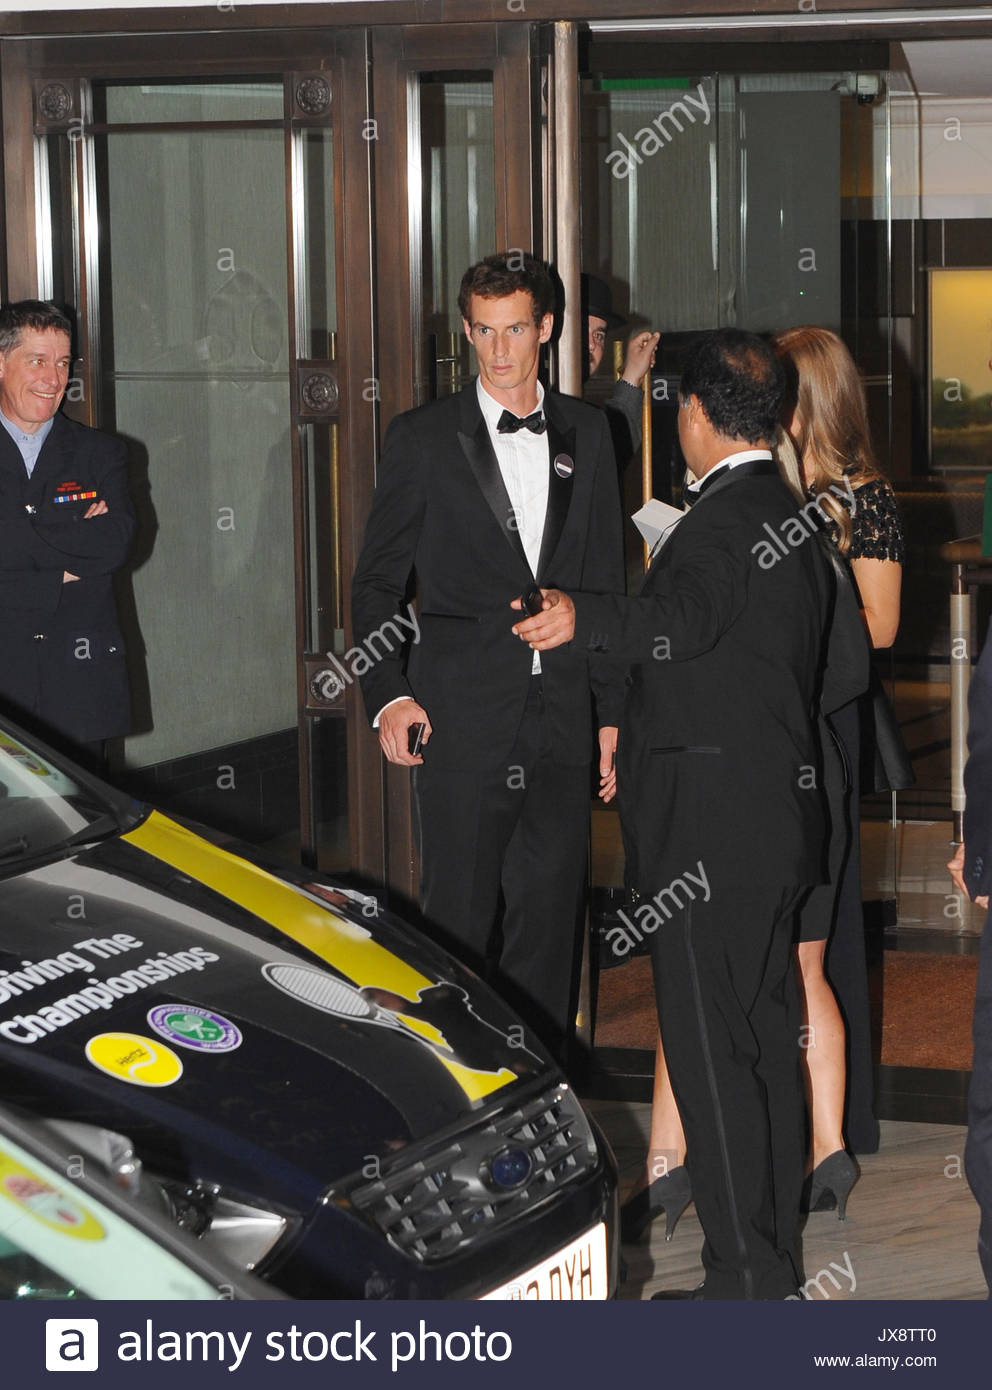 Dinner Parties For Singles Part - 31: Singlesu0027 Winners Andy Murray And Marion Bartoli Attend A Dinner Party At  InterContinental Hotel, Park Lane, London, UK.